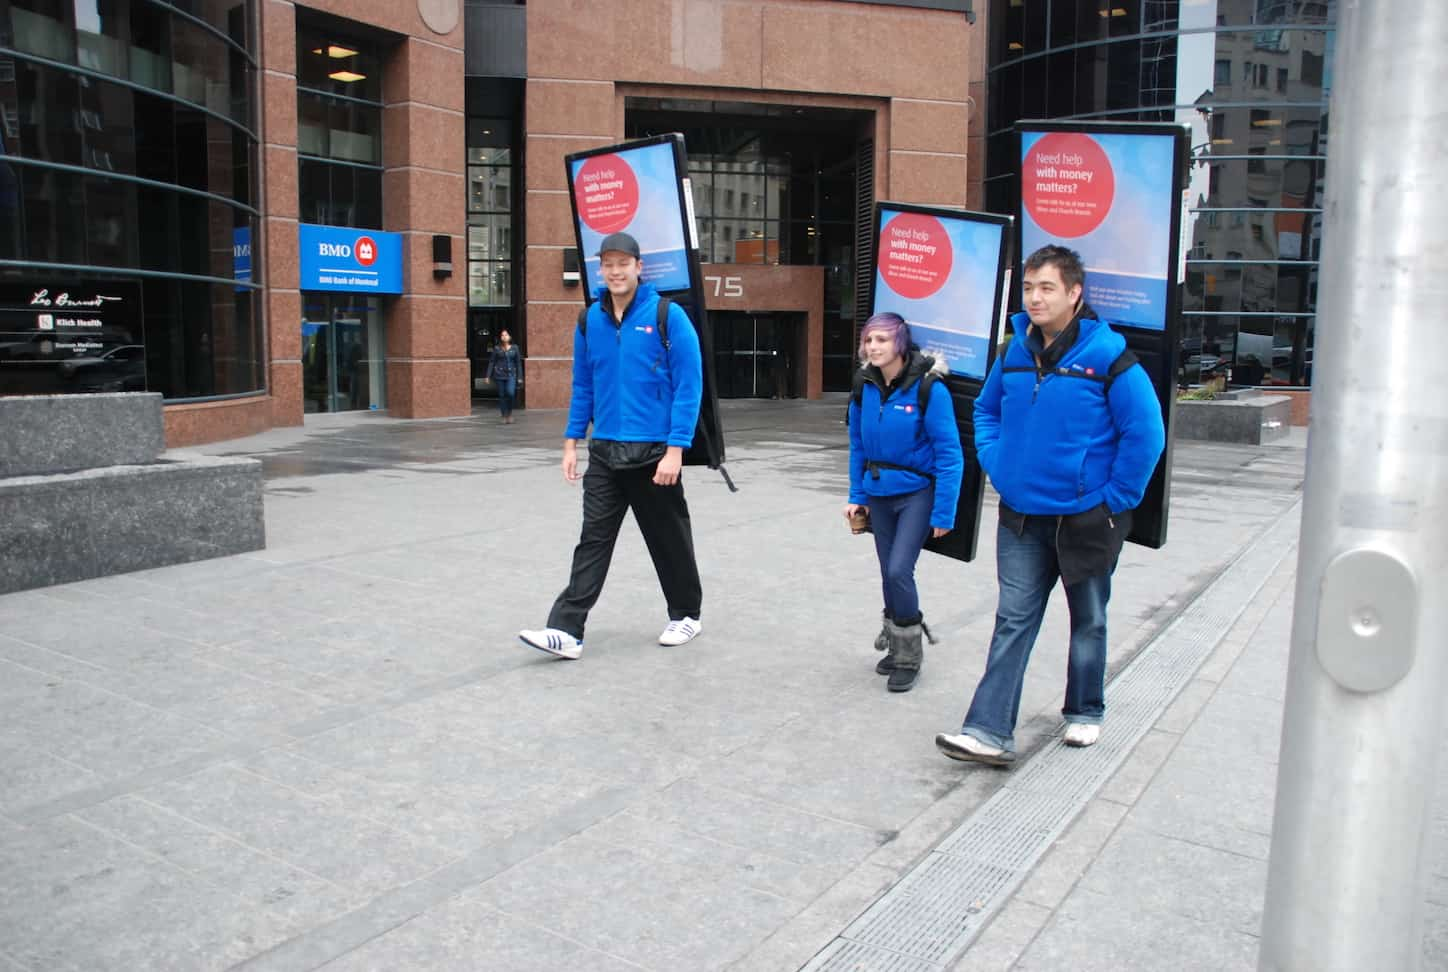 Walking Billboards company Vancouver